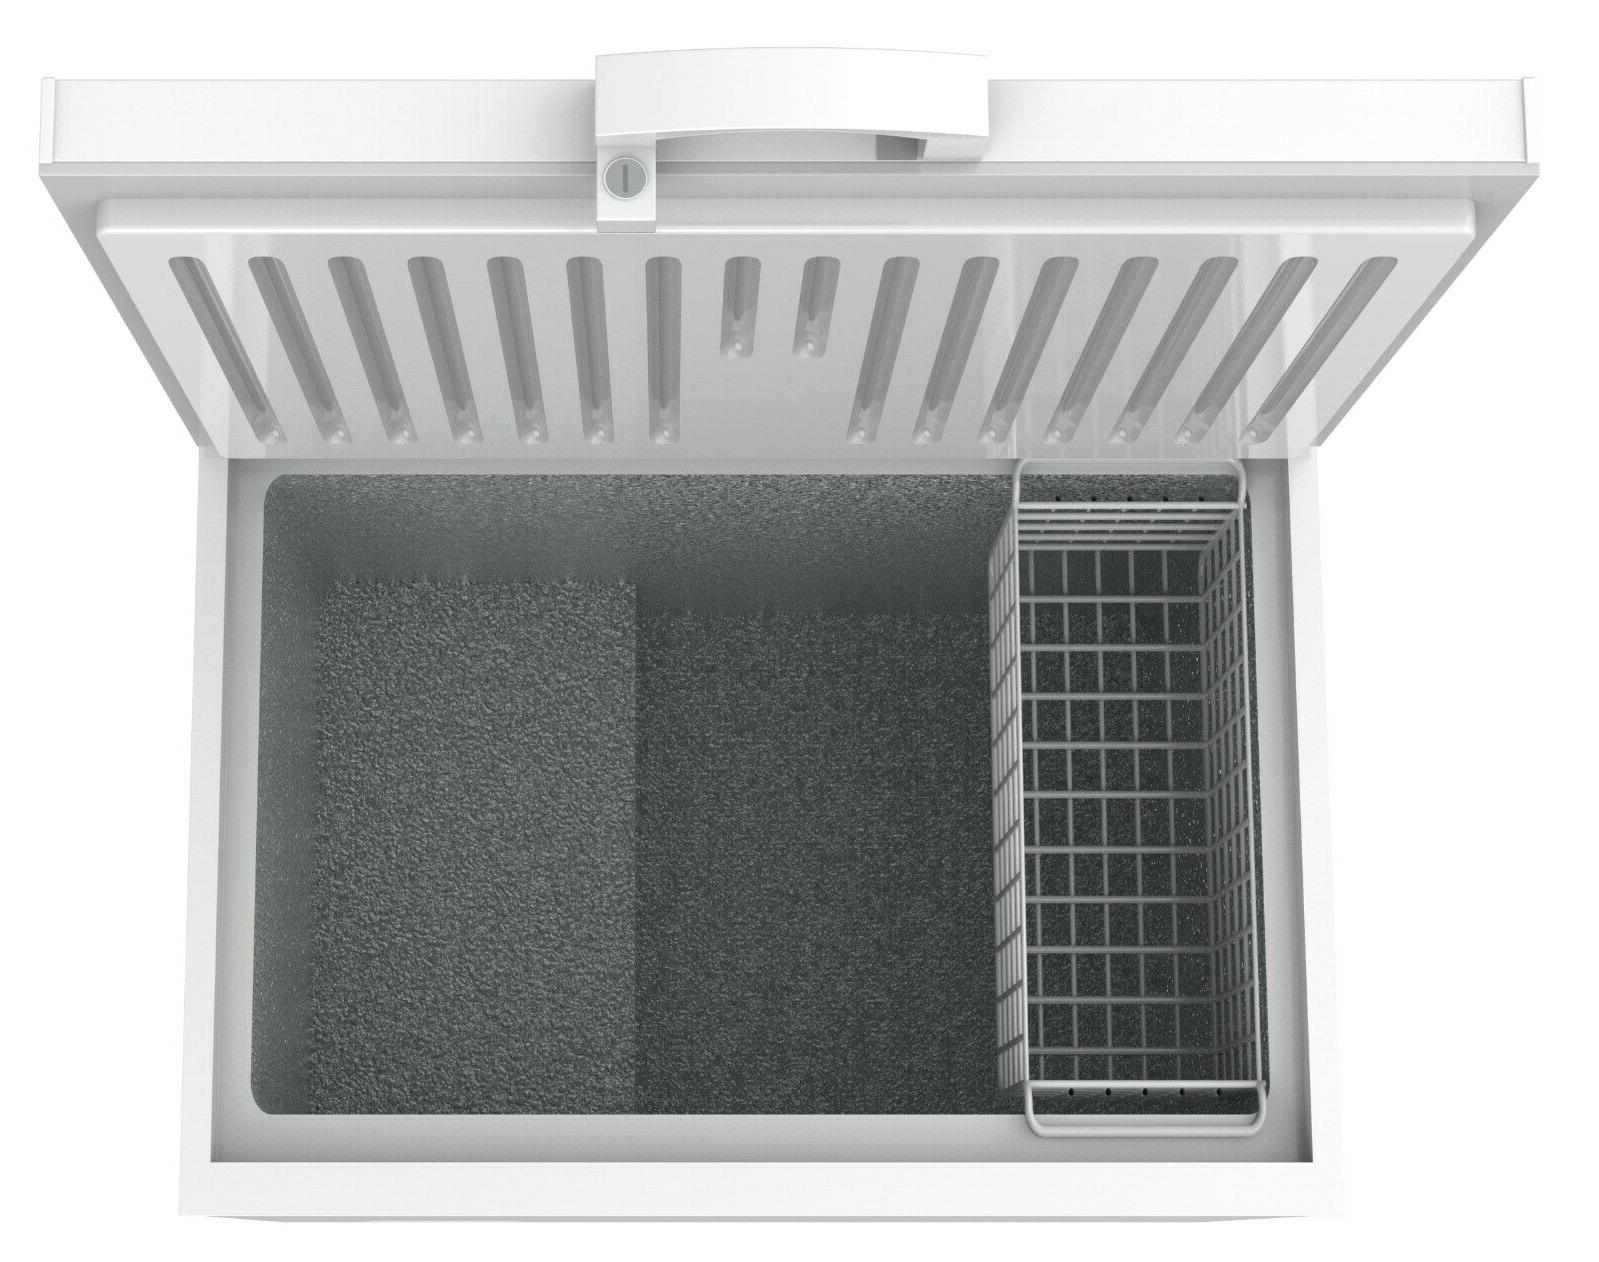 Chest Freezer 10 Ft. For